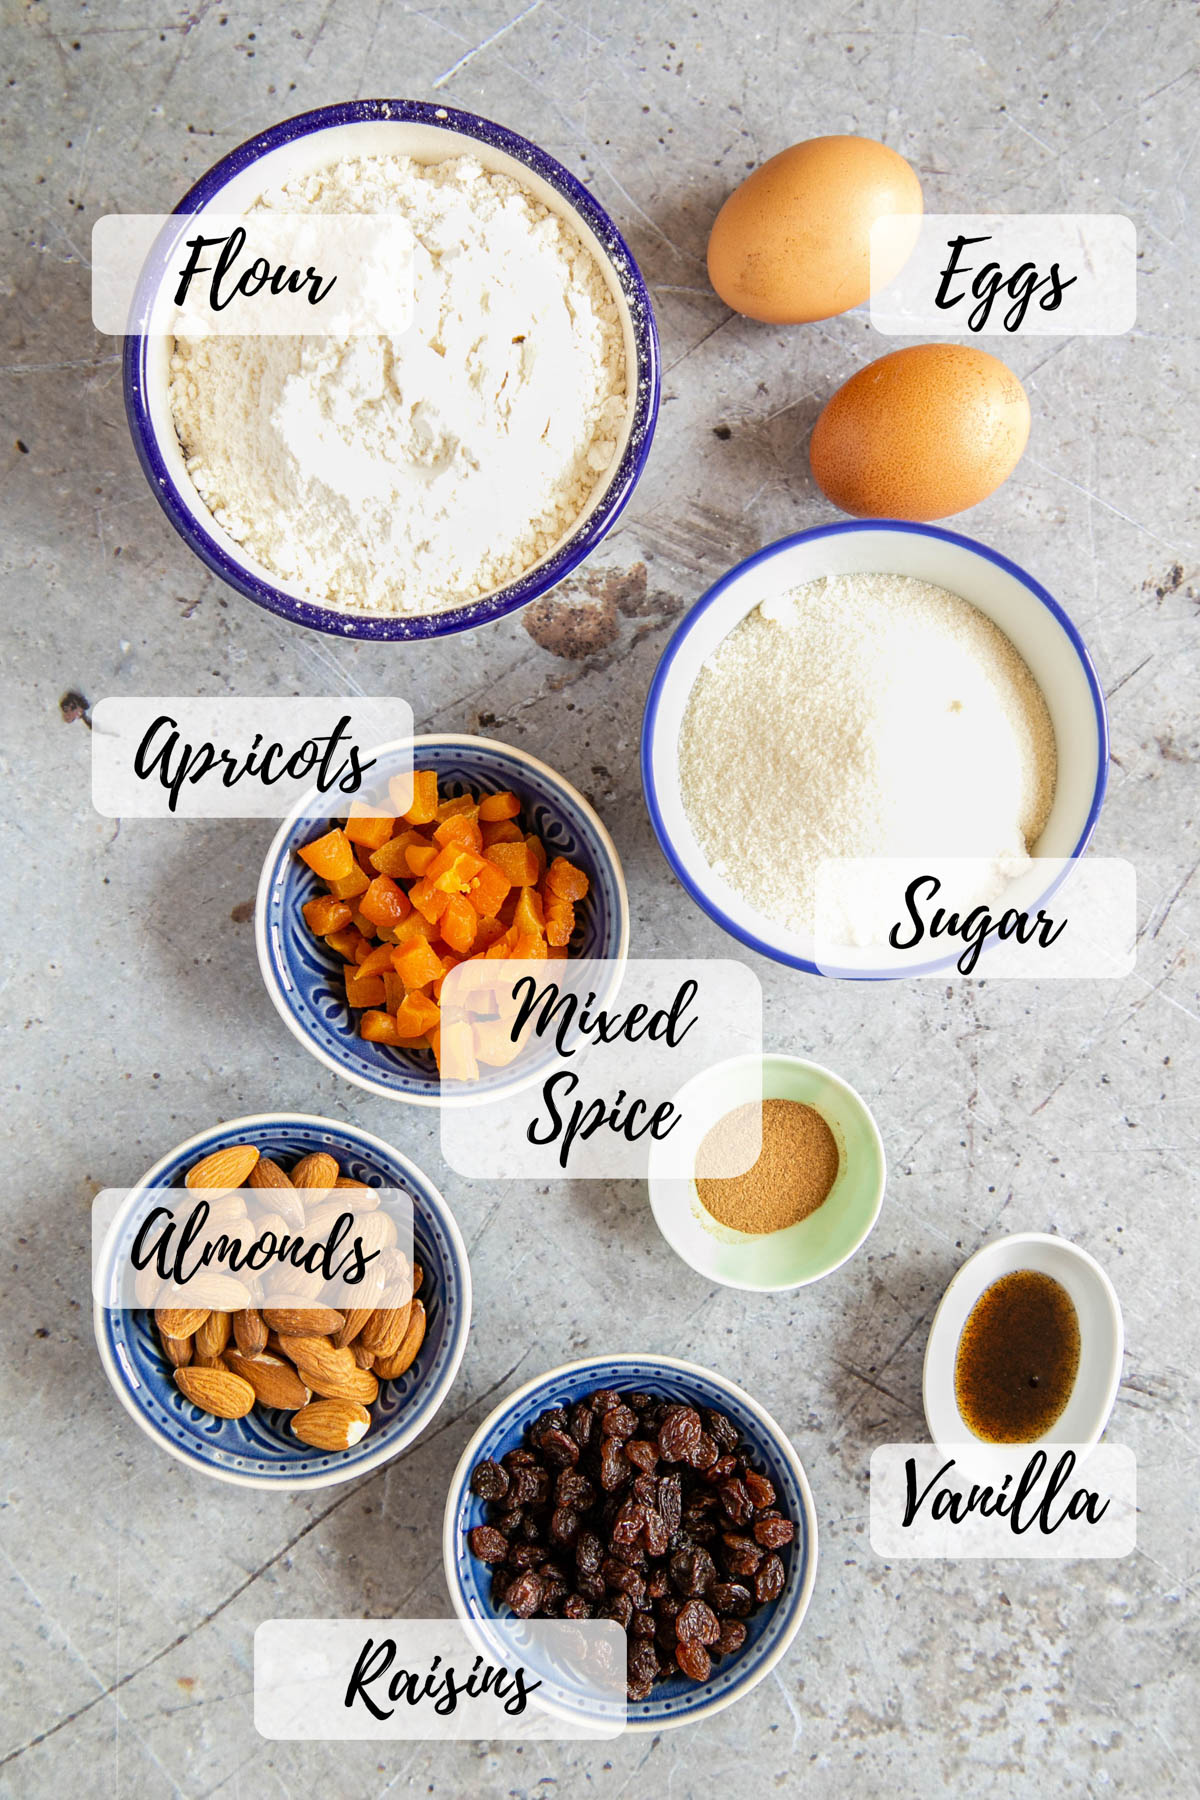 The ingredients for biscotti - flour, eggs, sugar, mixed spice, apricots, raisins, almonds, and vanilla extract. Each ingredient in a small bowl, ready for use.